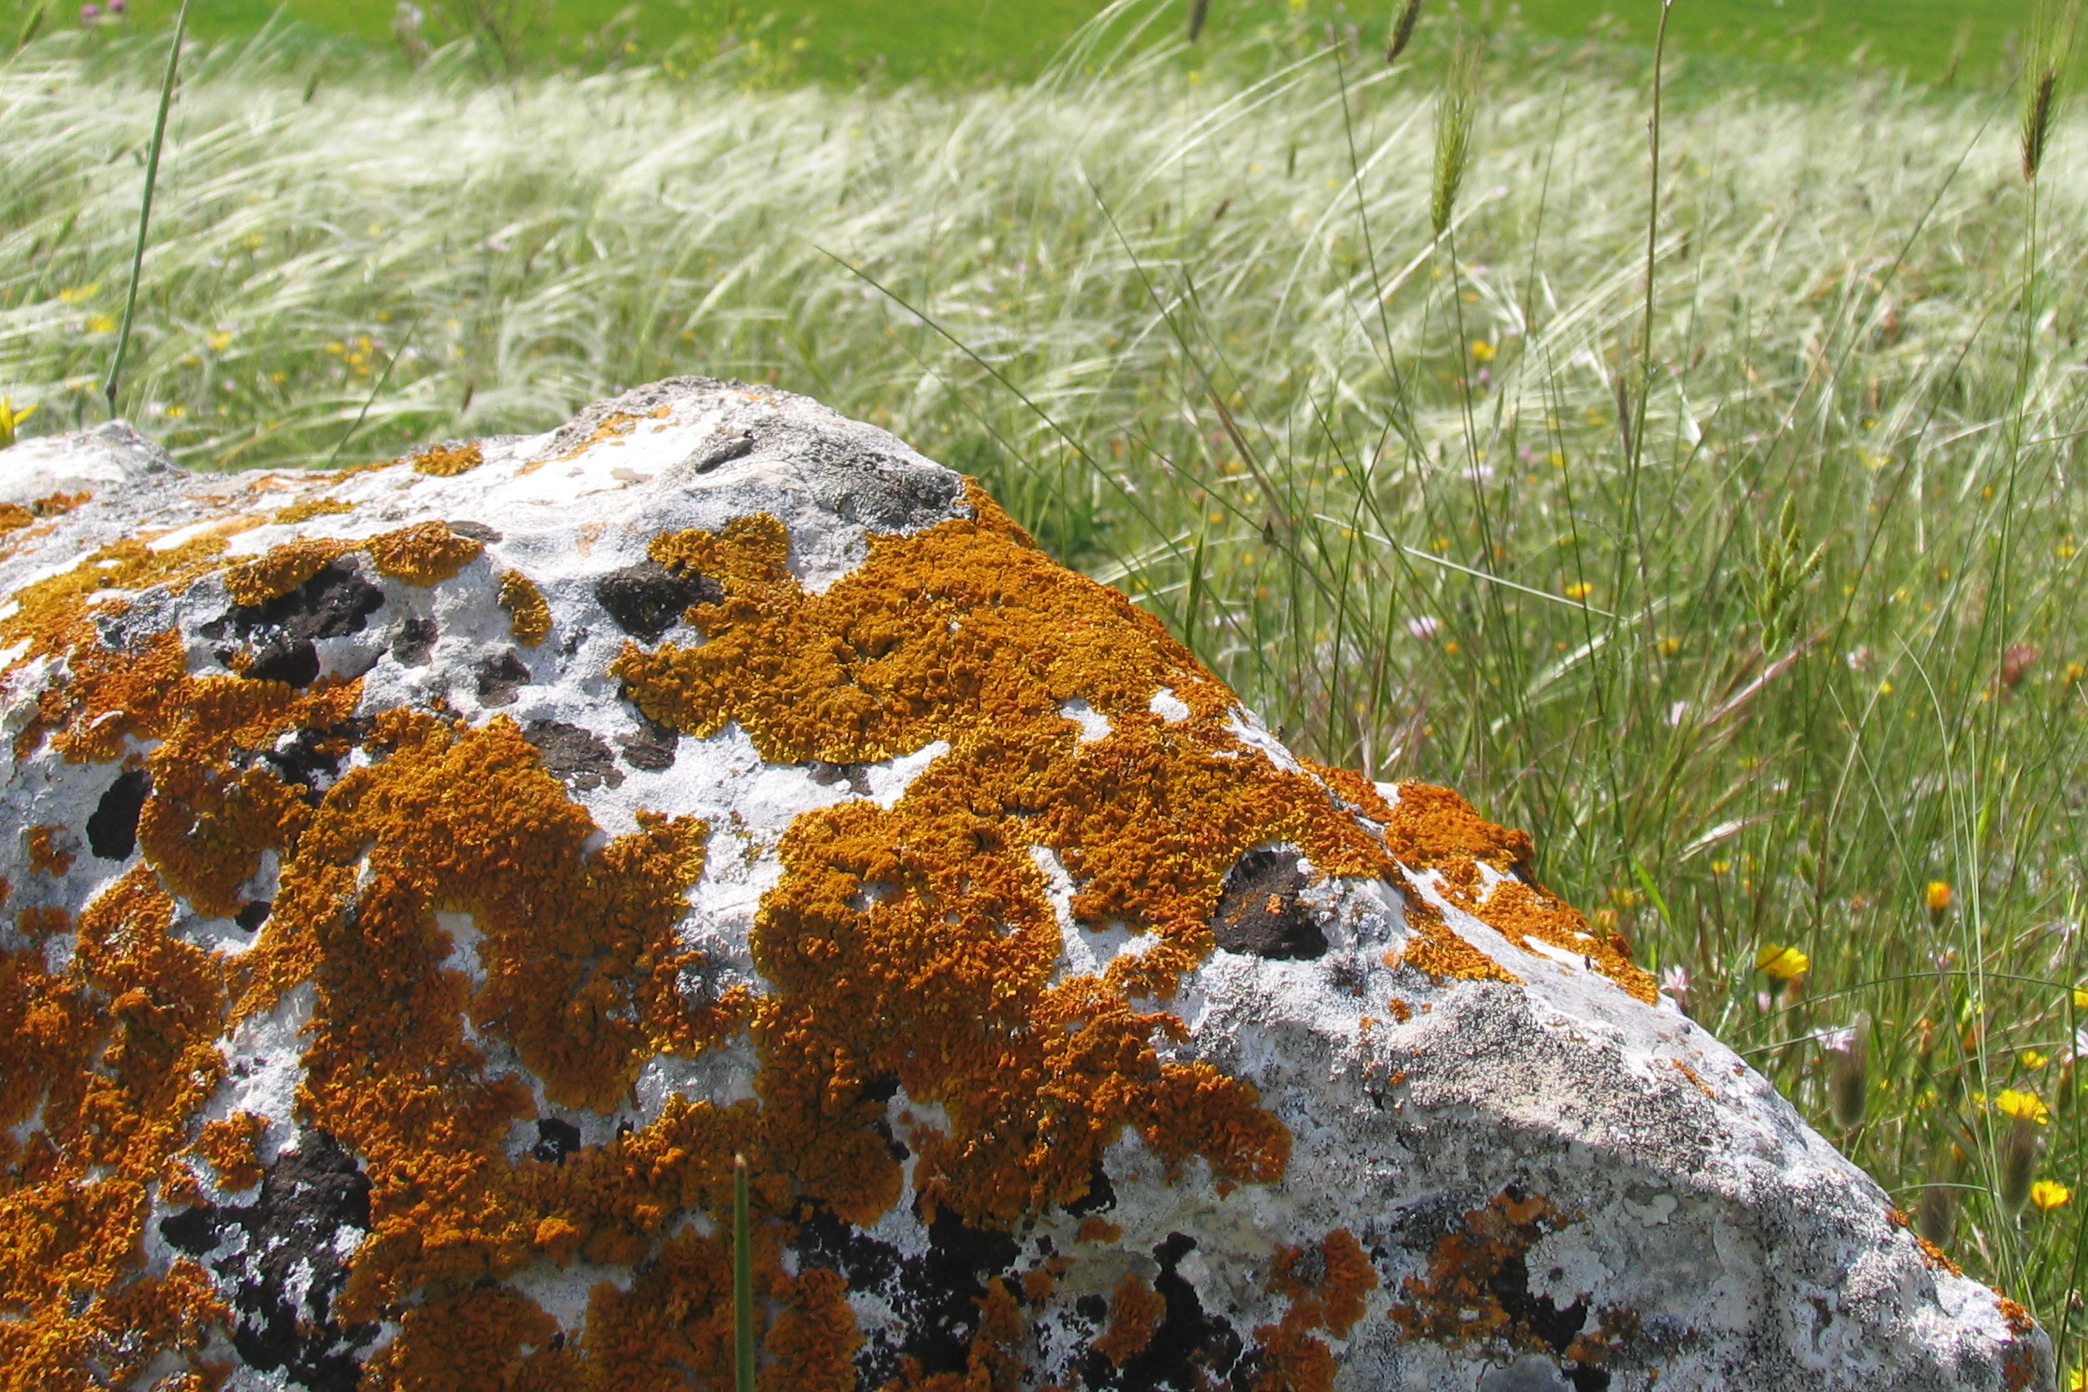 Limestone lichen community in submediterranean grasslands in Alta Murgia National Park, Italy. Photo: R. Labadessa.